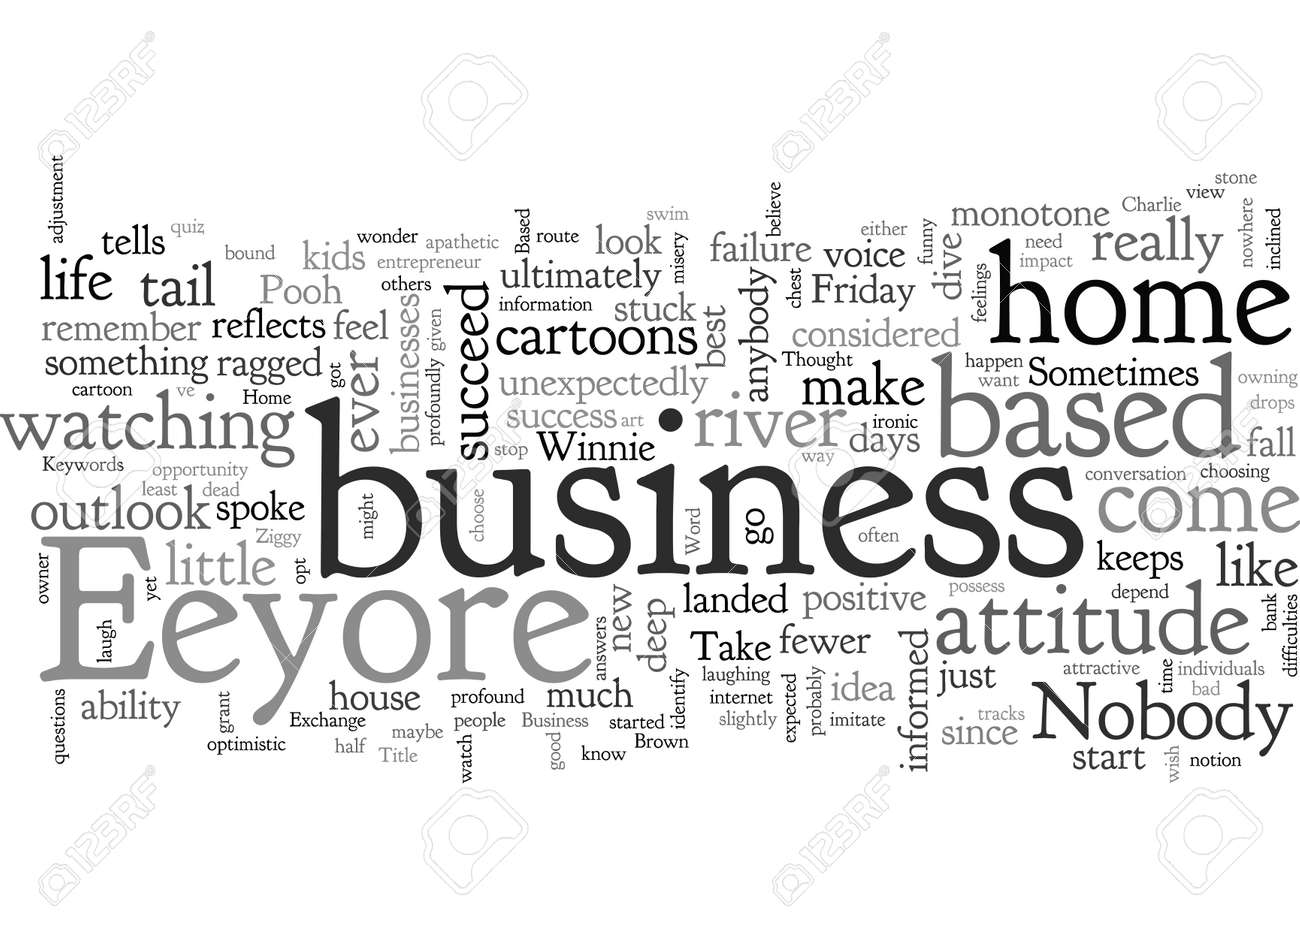 Home Based Business The Eeyore Factor - 132361502